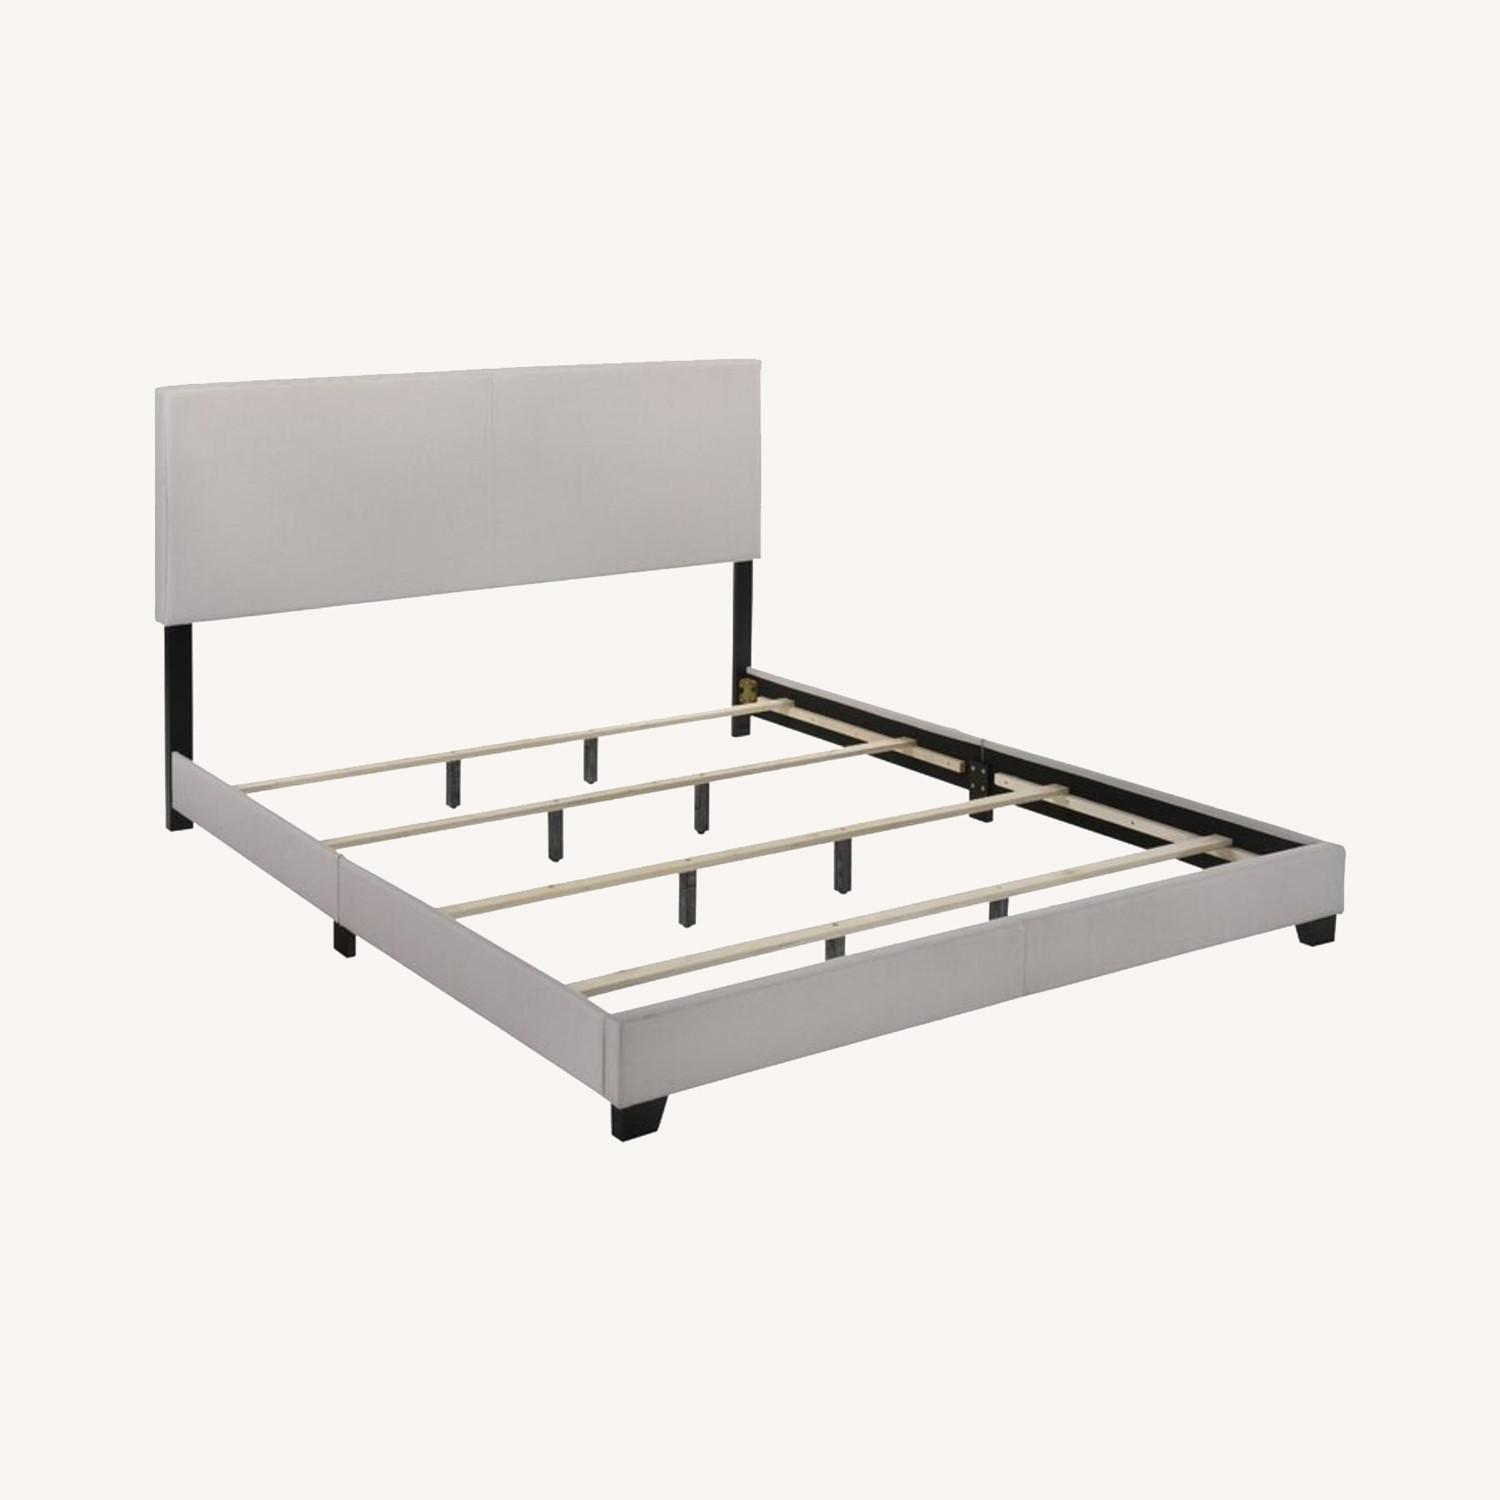 Zipcode Design Upholstered Low Profile Full Bed Frame - image-0